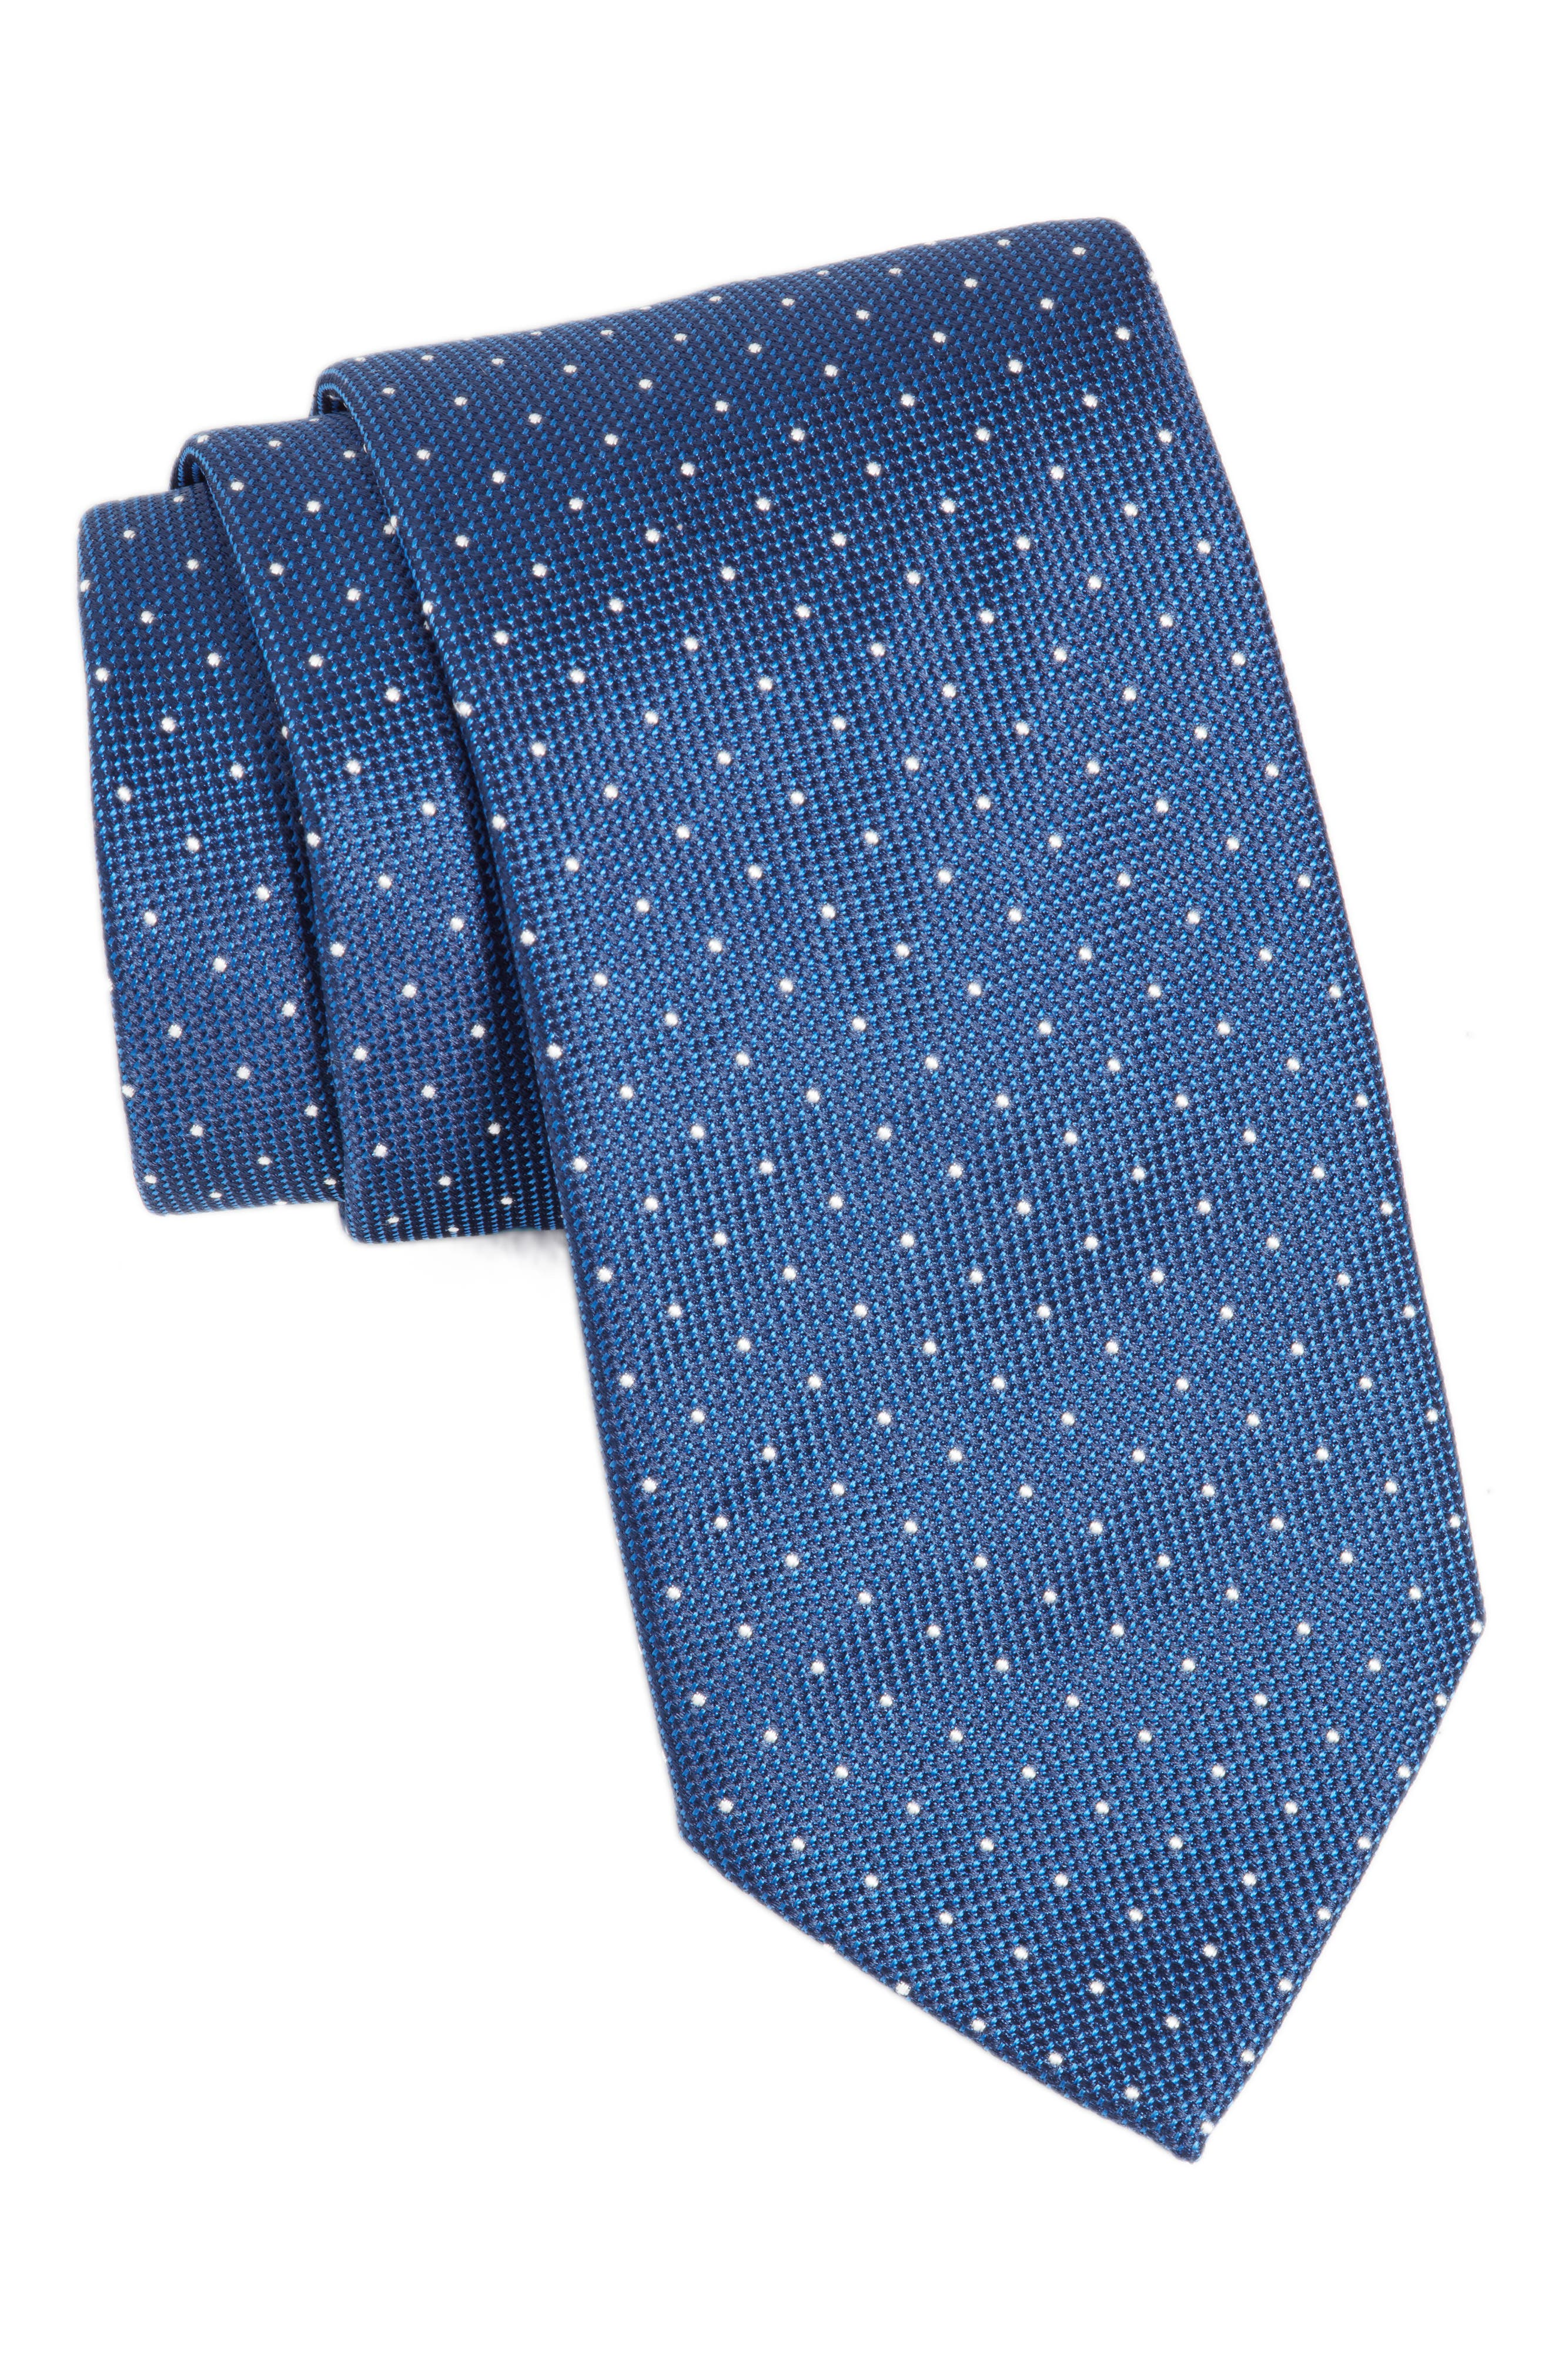 Dot Silk Tie,                             Main thumbnail 1, color,                             Turquoise/ Aqua